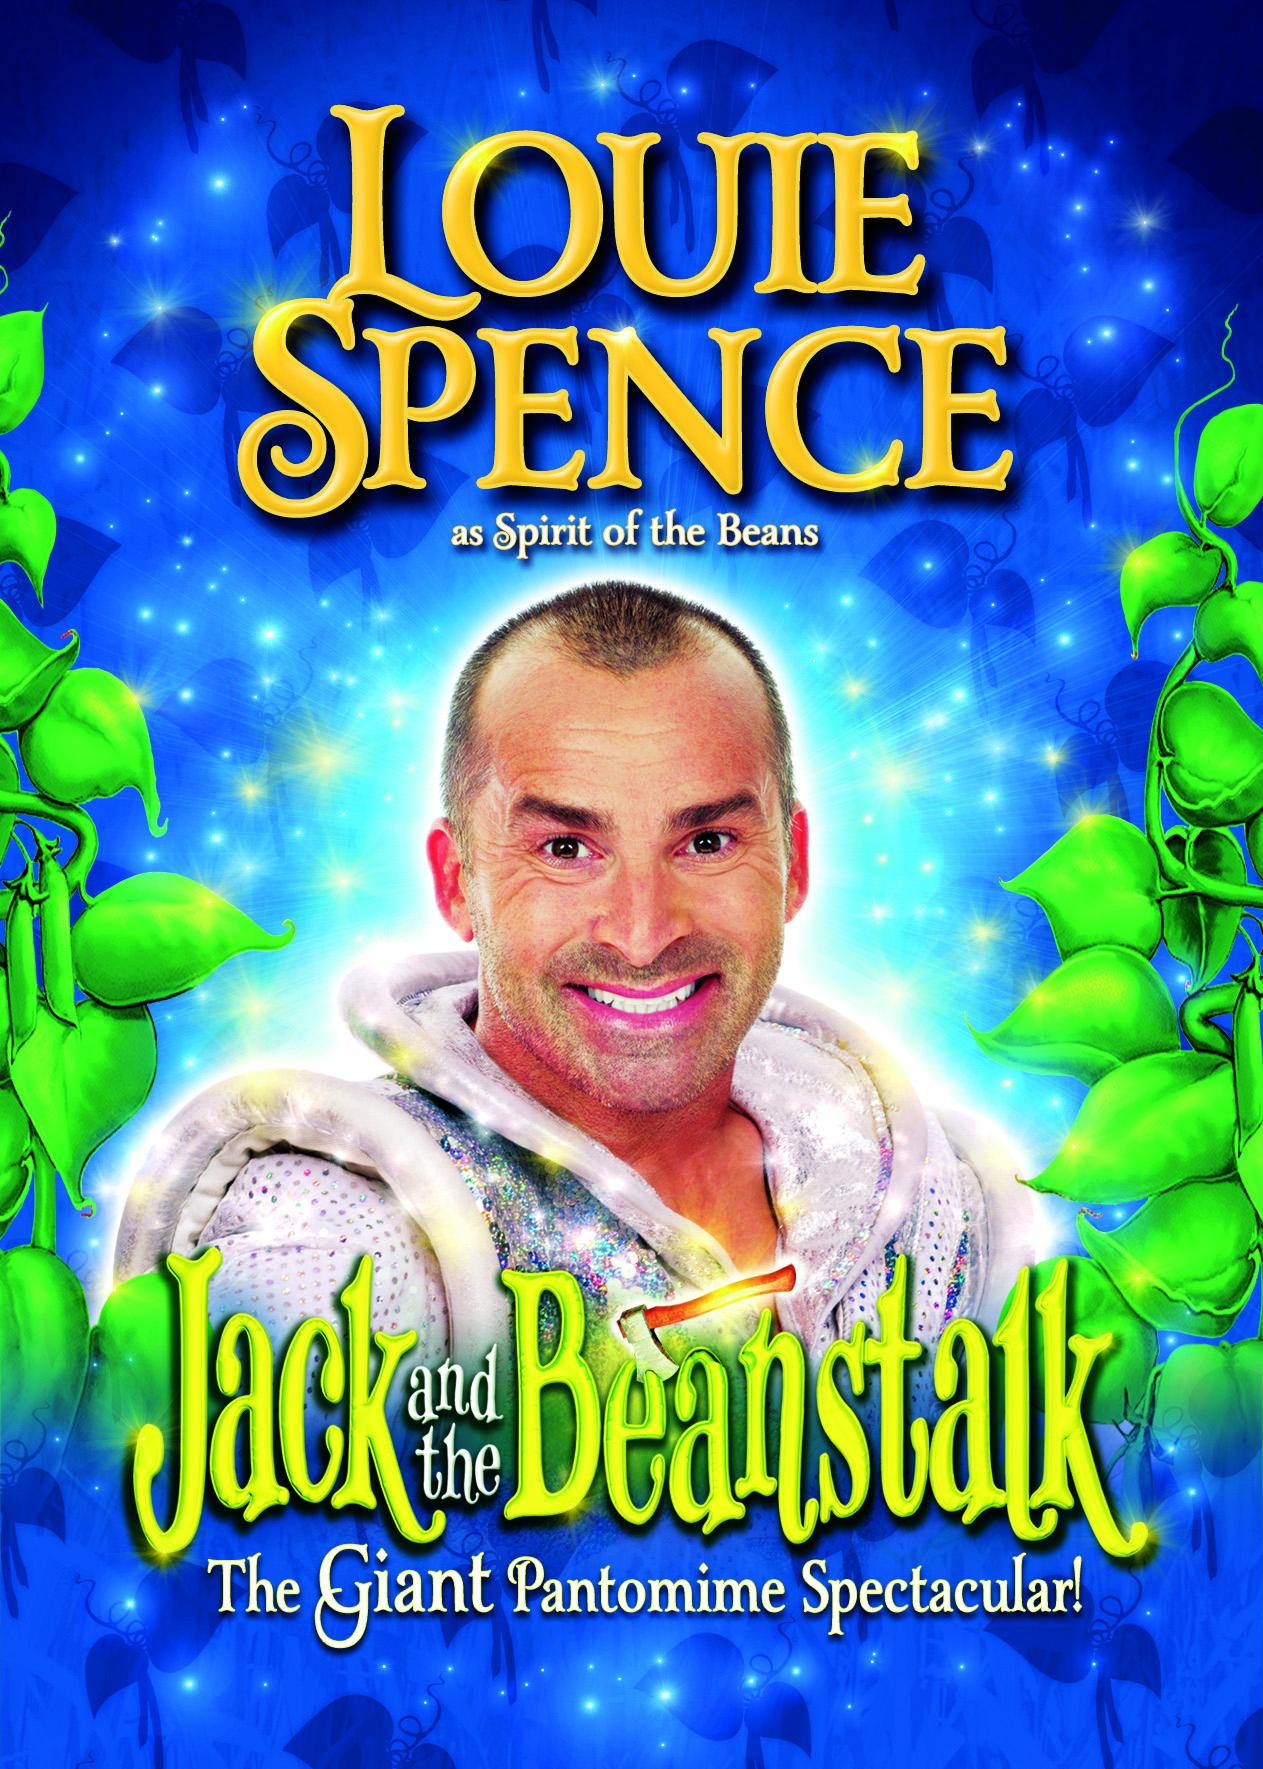 RT @SwanseaGrand: We can now announce that this year's panto star will be the one and only @louiespence! This will be a fun one!! http://t.…